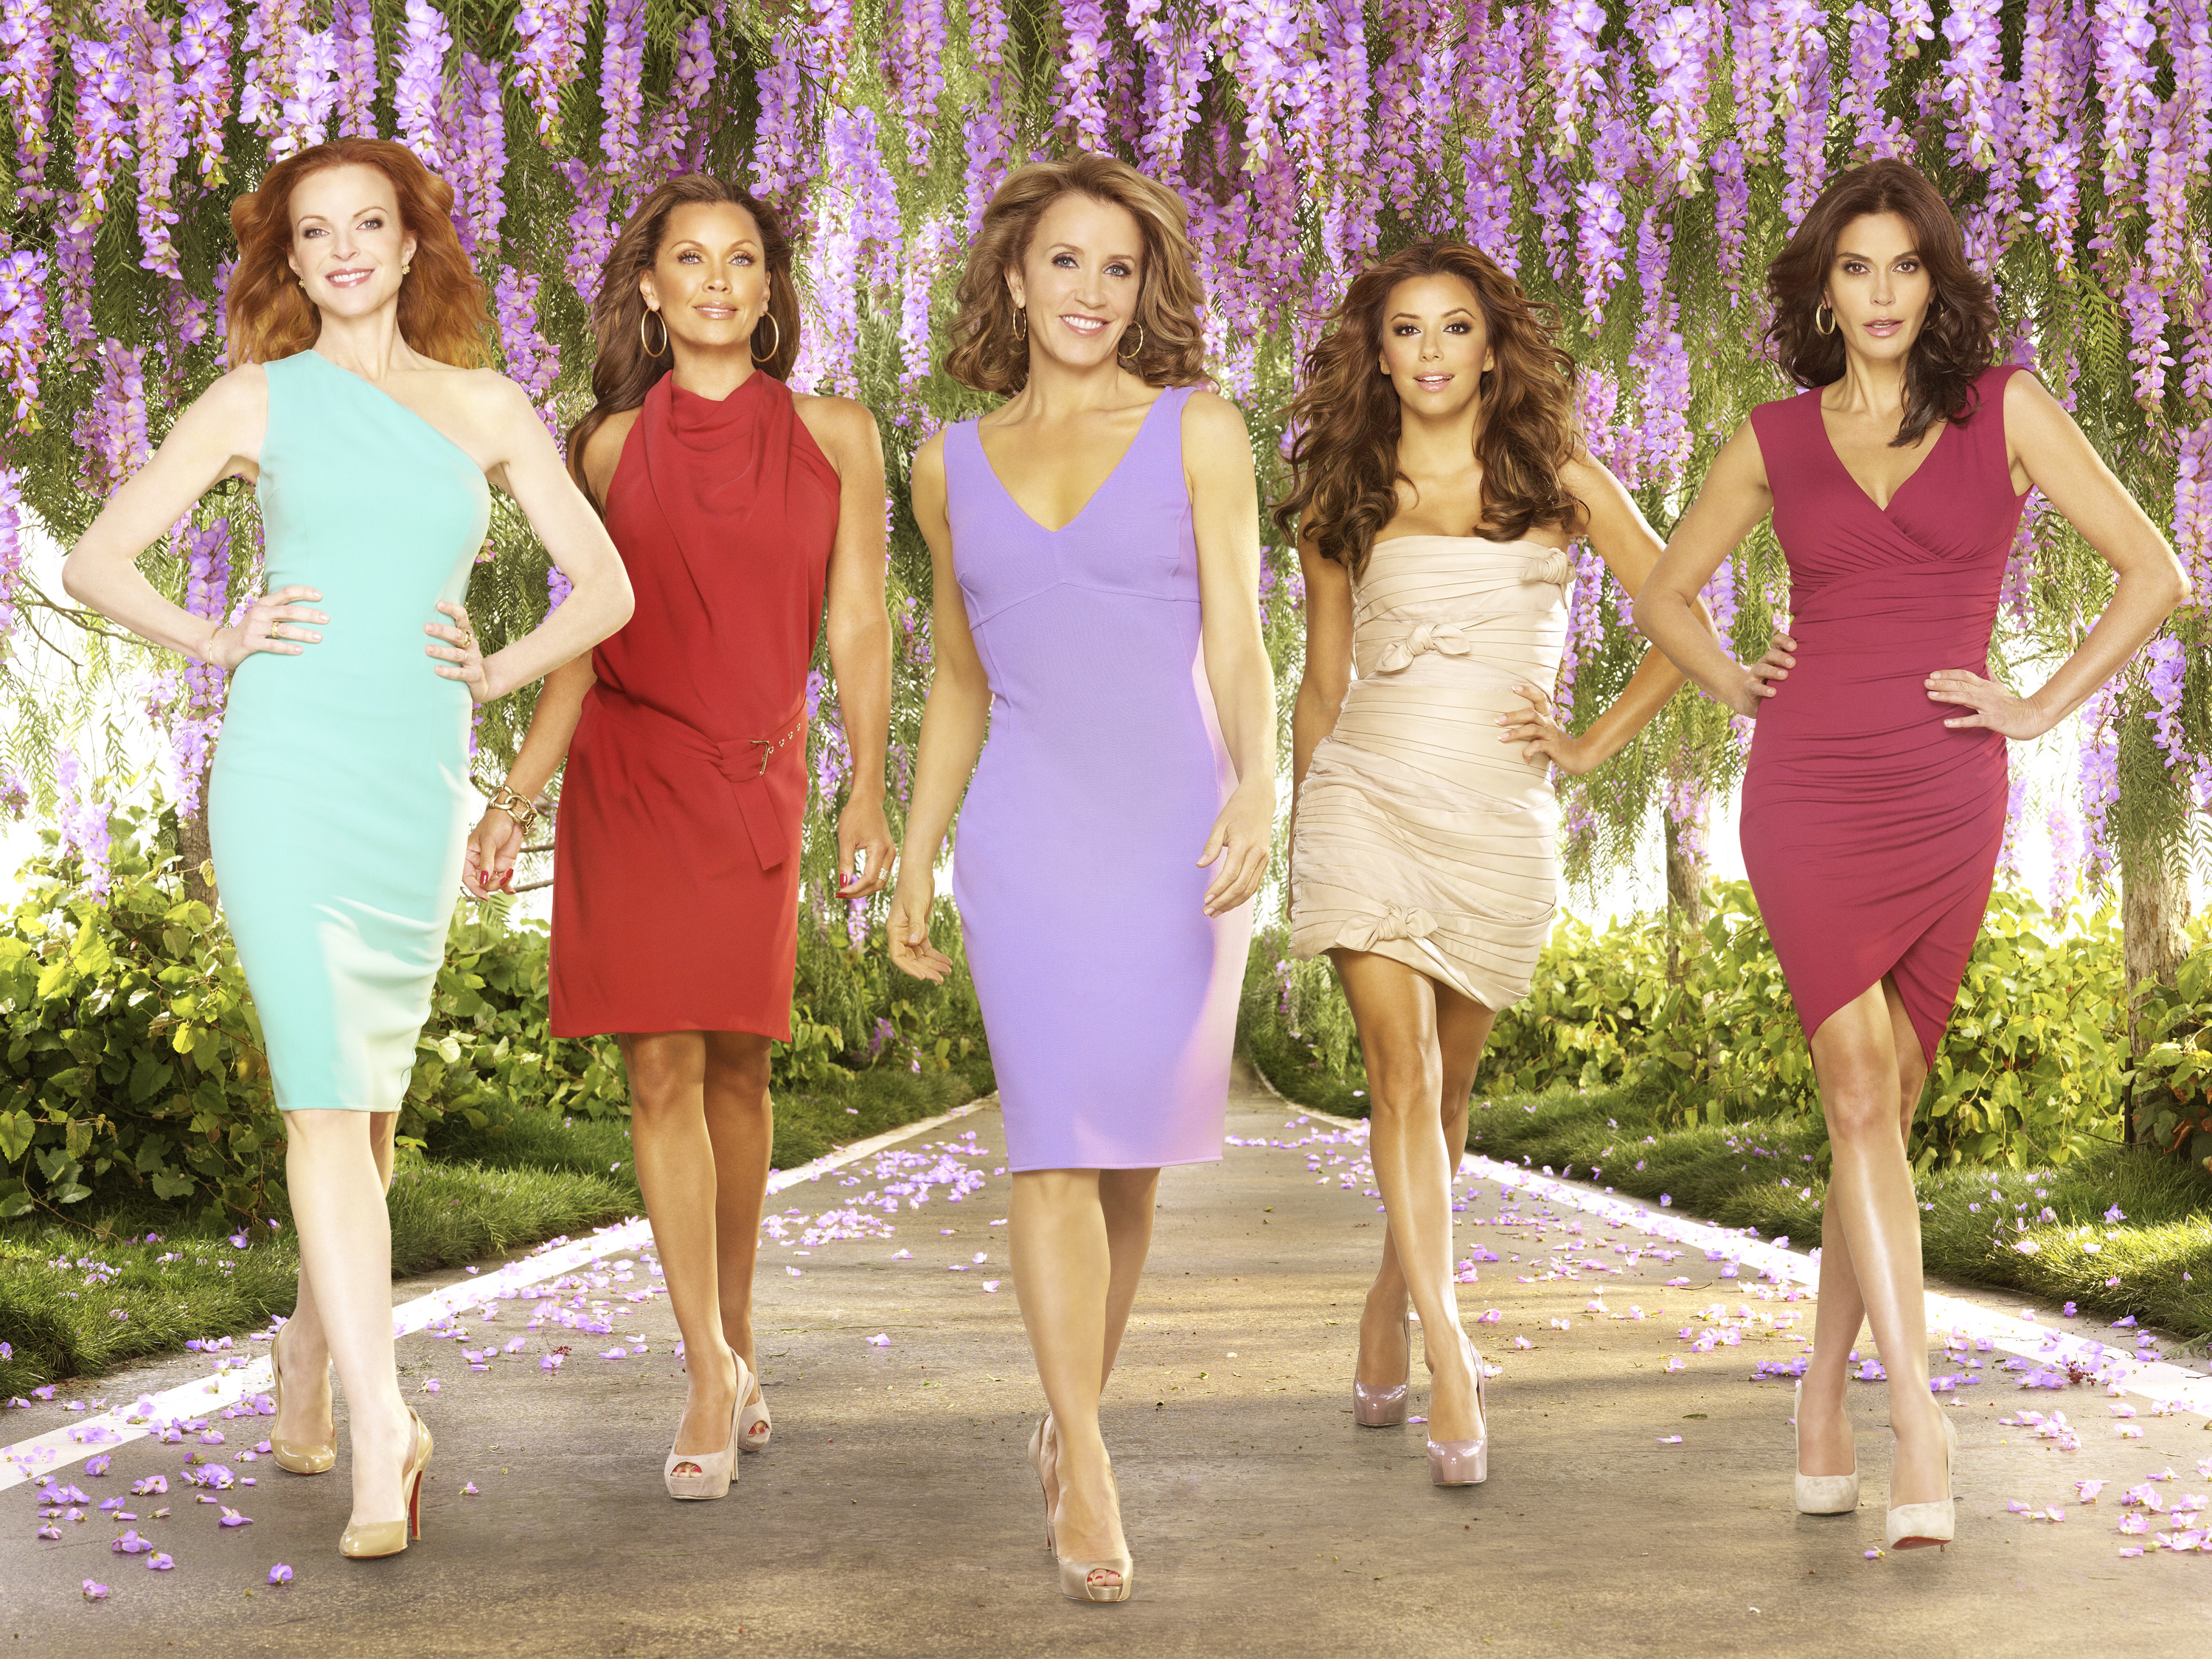 Desperate Housewives Cast Reuniting But Without These Stars Cocktailsandcocktalk See agents for this cast & crew on imdbpro. https www cocktailsandcocktalk com 2020 04 desperate housewives cast reuniting but without these stars